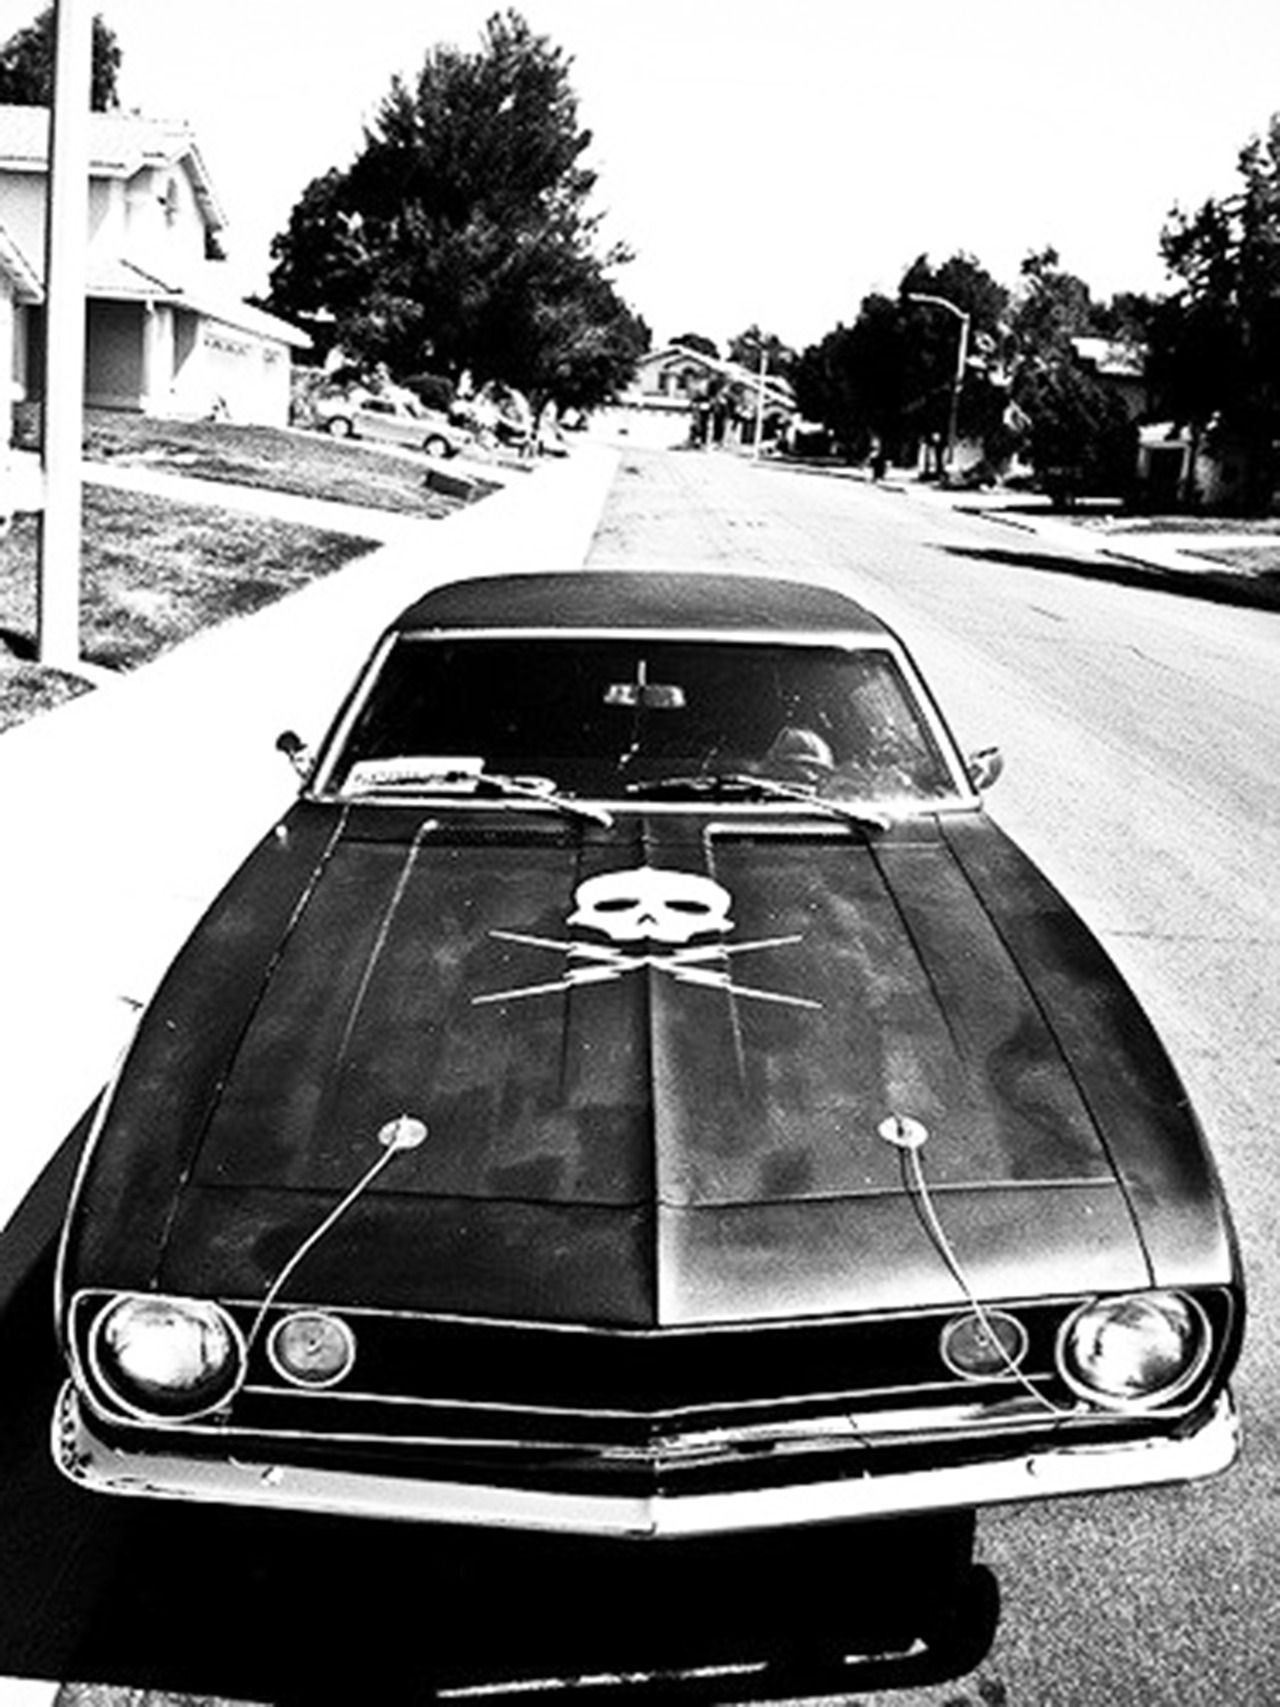 My spoof to death proof with the original cover art car they used the camaro in the movie they obviously used a 1970 chevy nova a dodge charger death